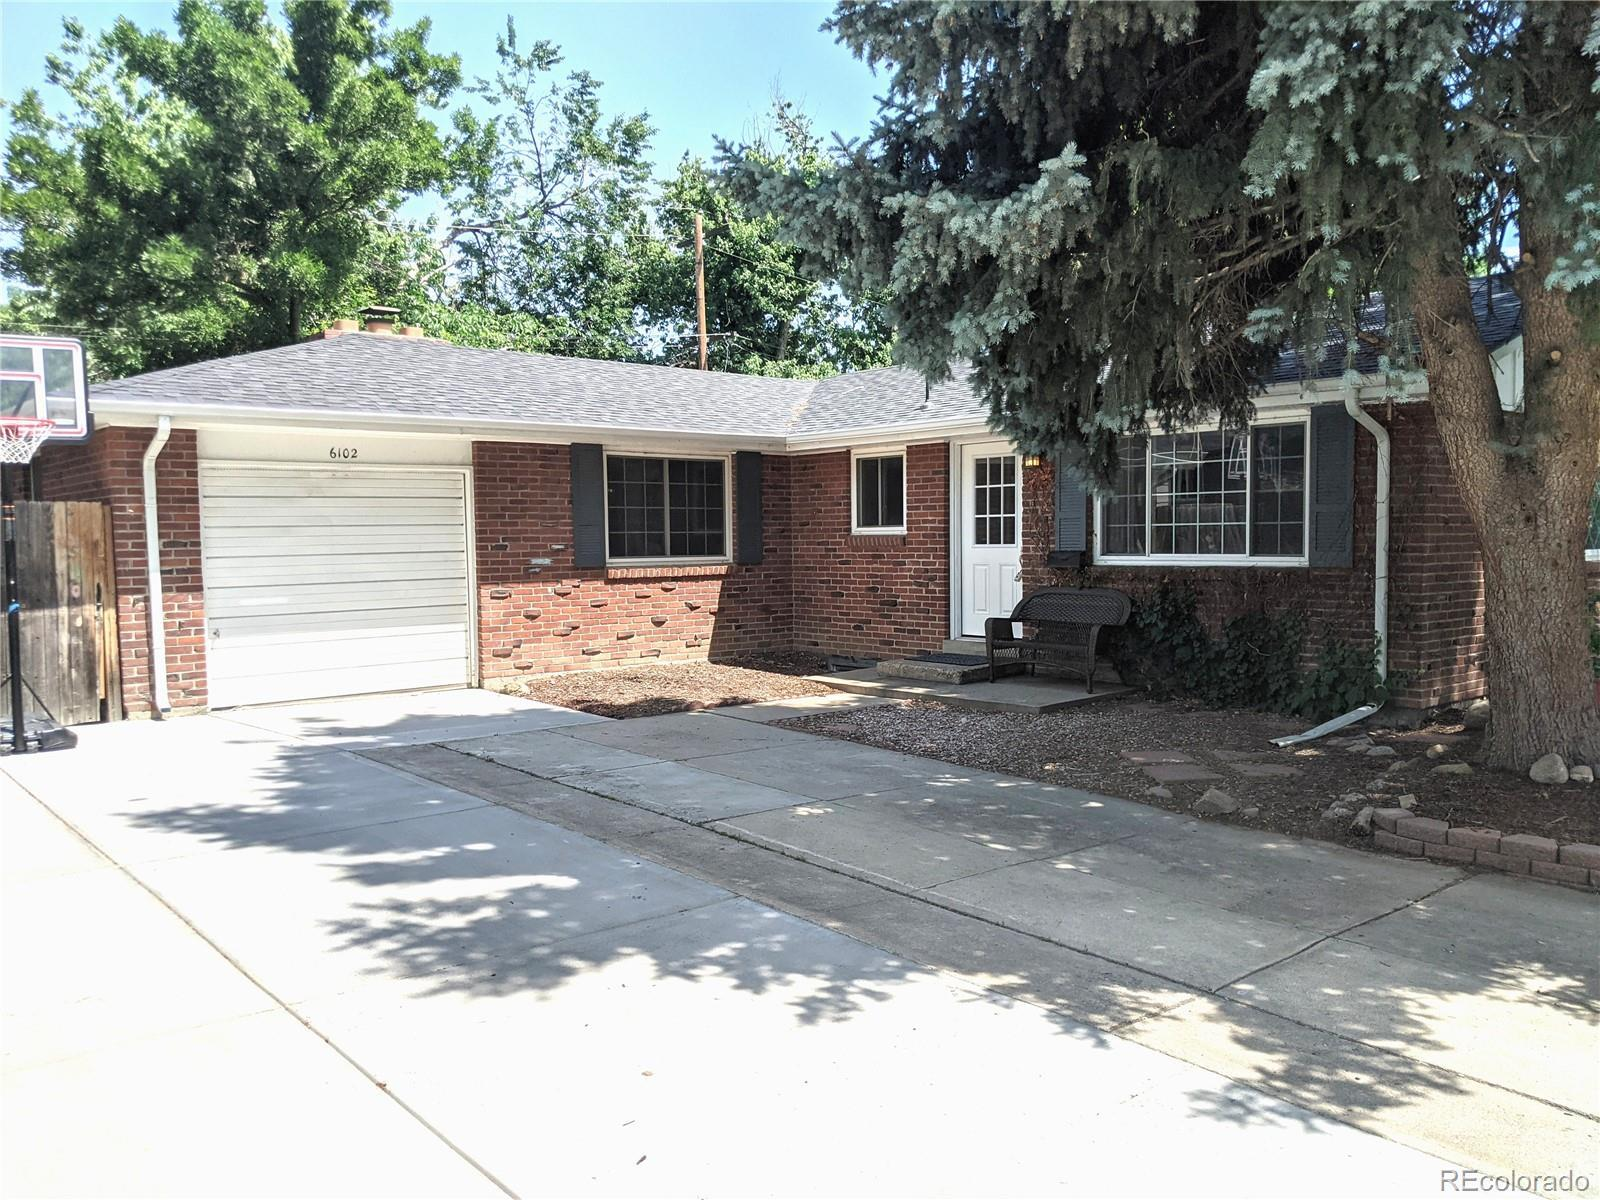 6102 Dudley Court, Arvada, CO 80004 - #: 5555775